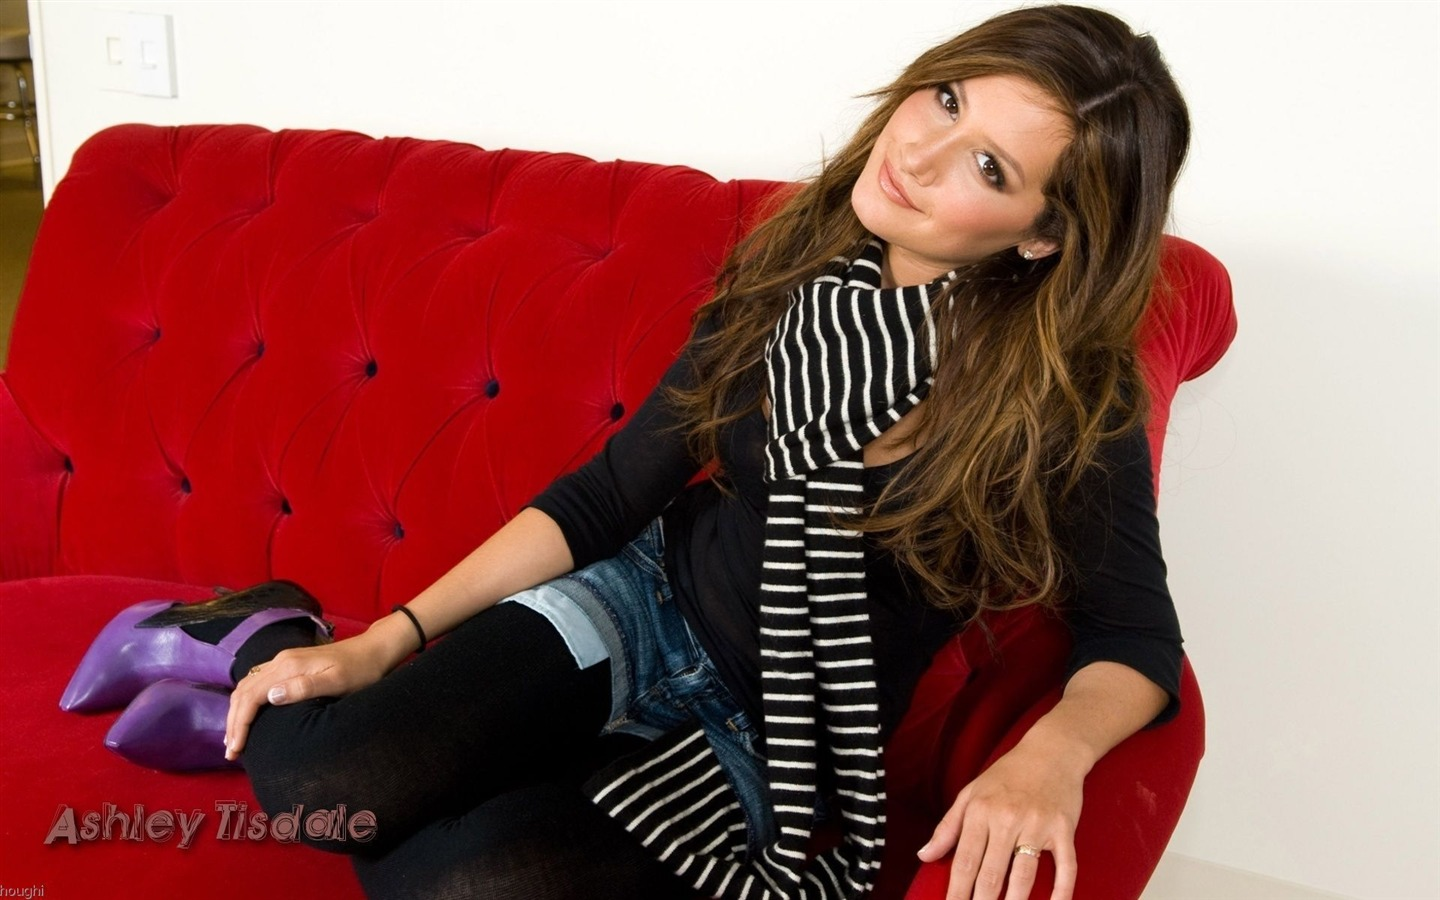 Ashley Tisdale #060 - 1440x900 Wallpapers Pictures Photos Images